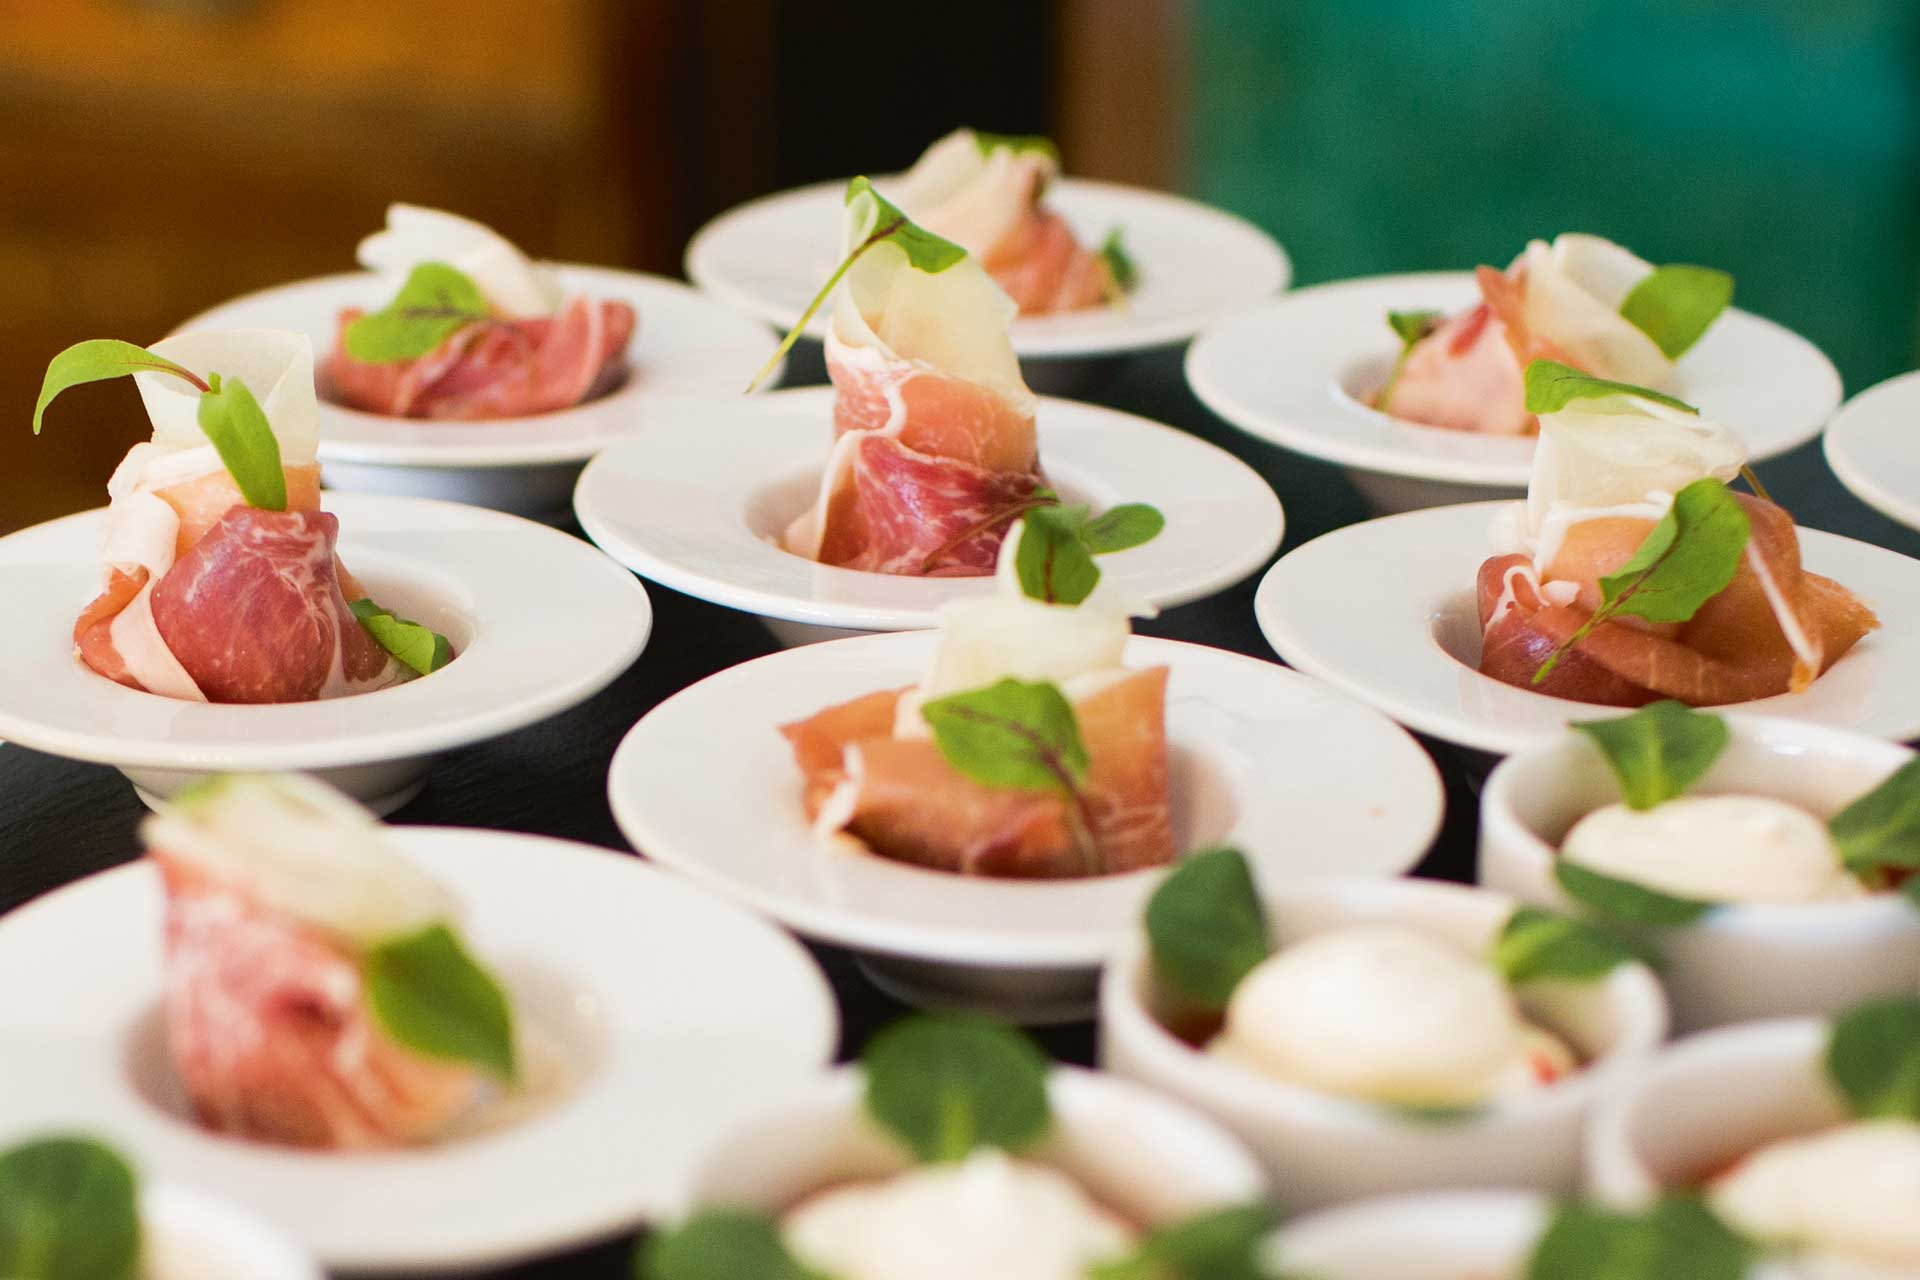 Plates of ham laid out for a large hotel conference